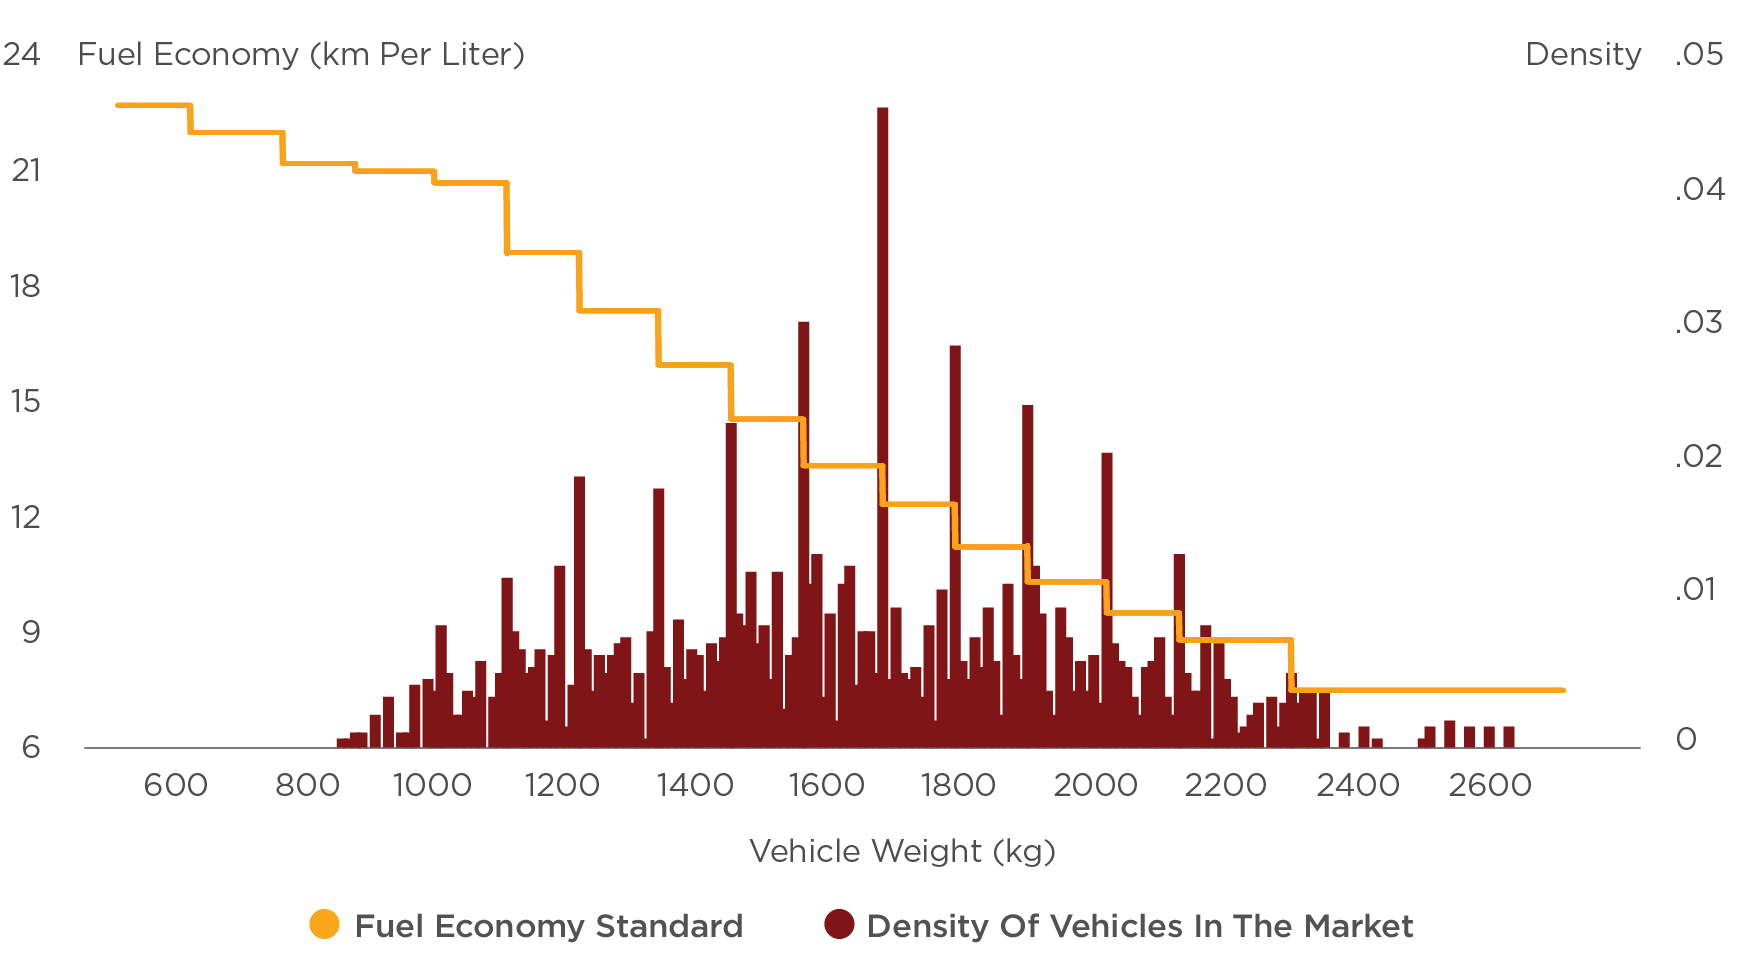 Years 2009 - 2013 (New Fuel Economy Standard)